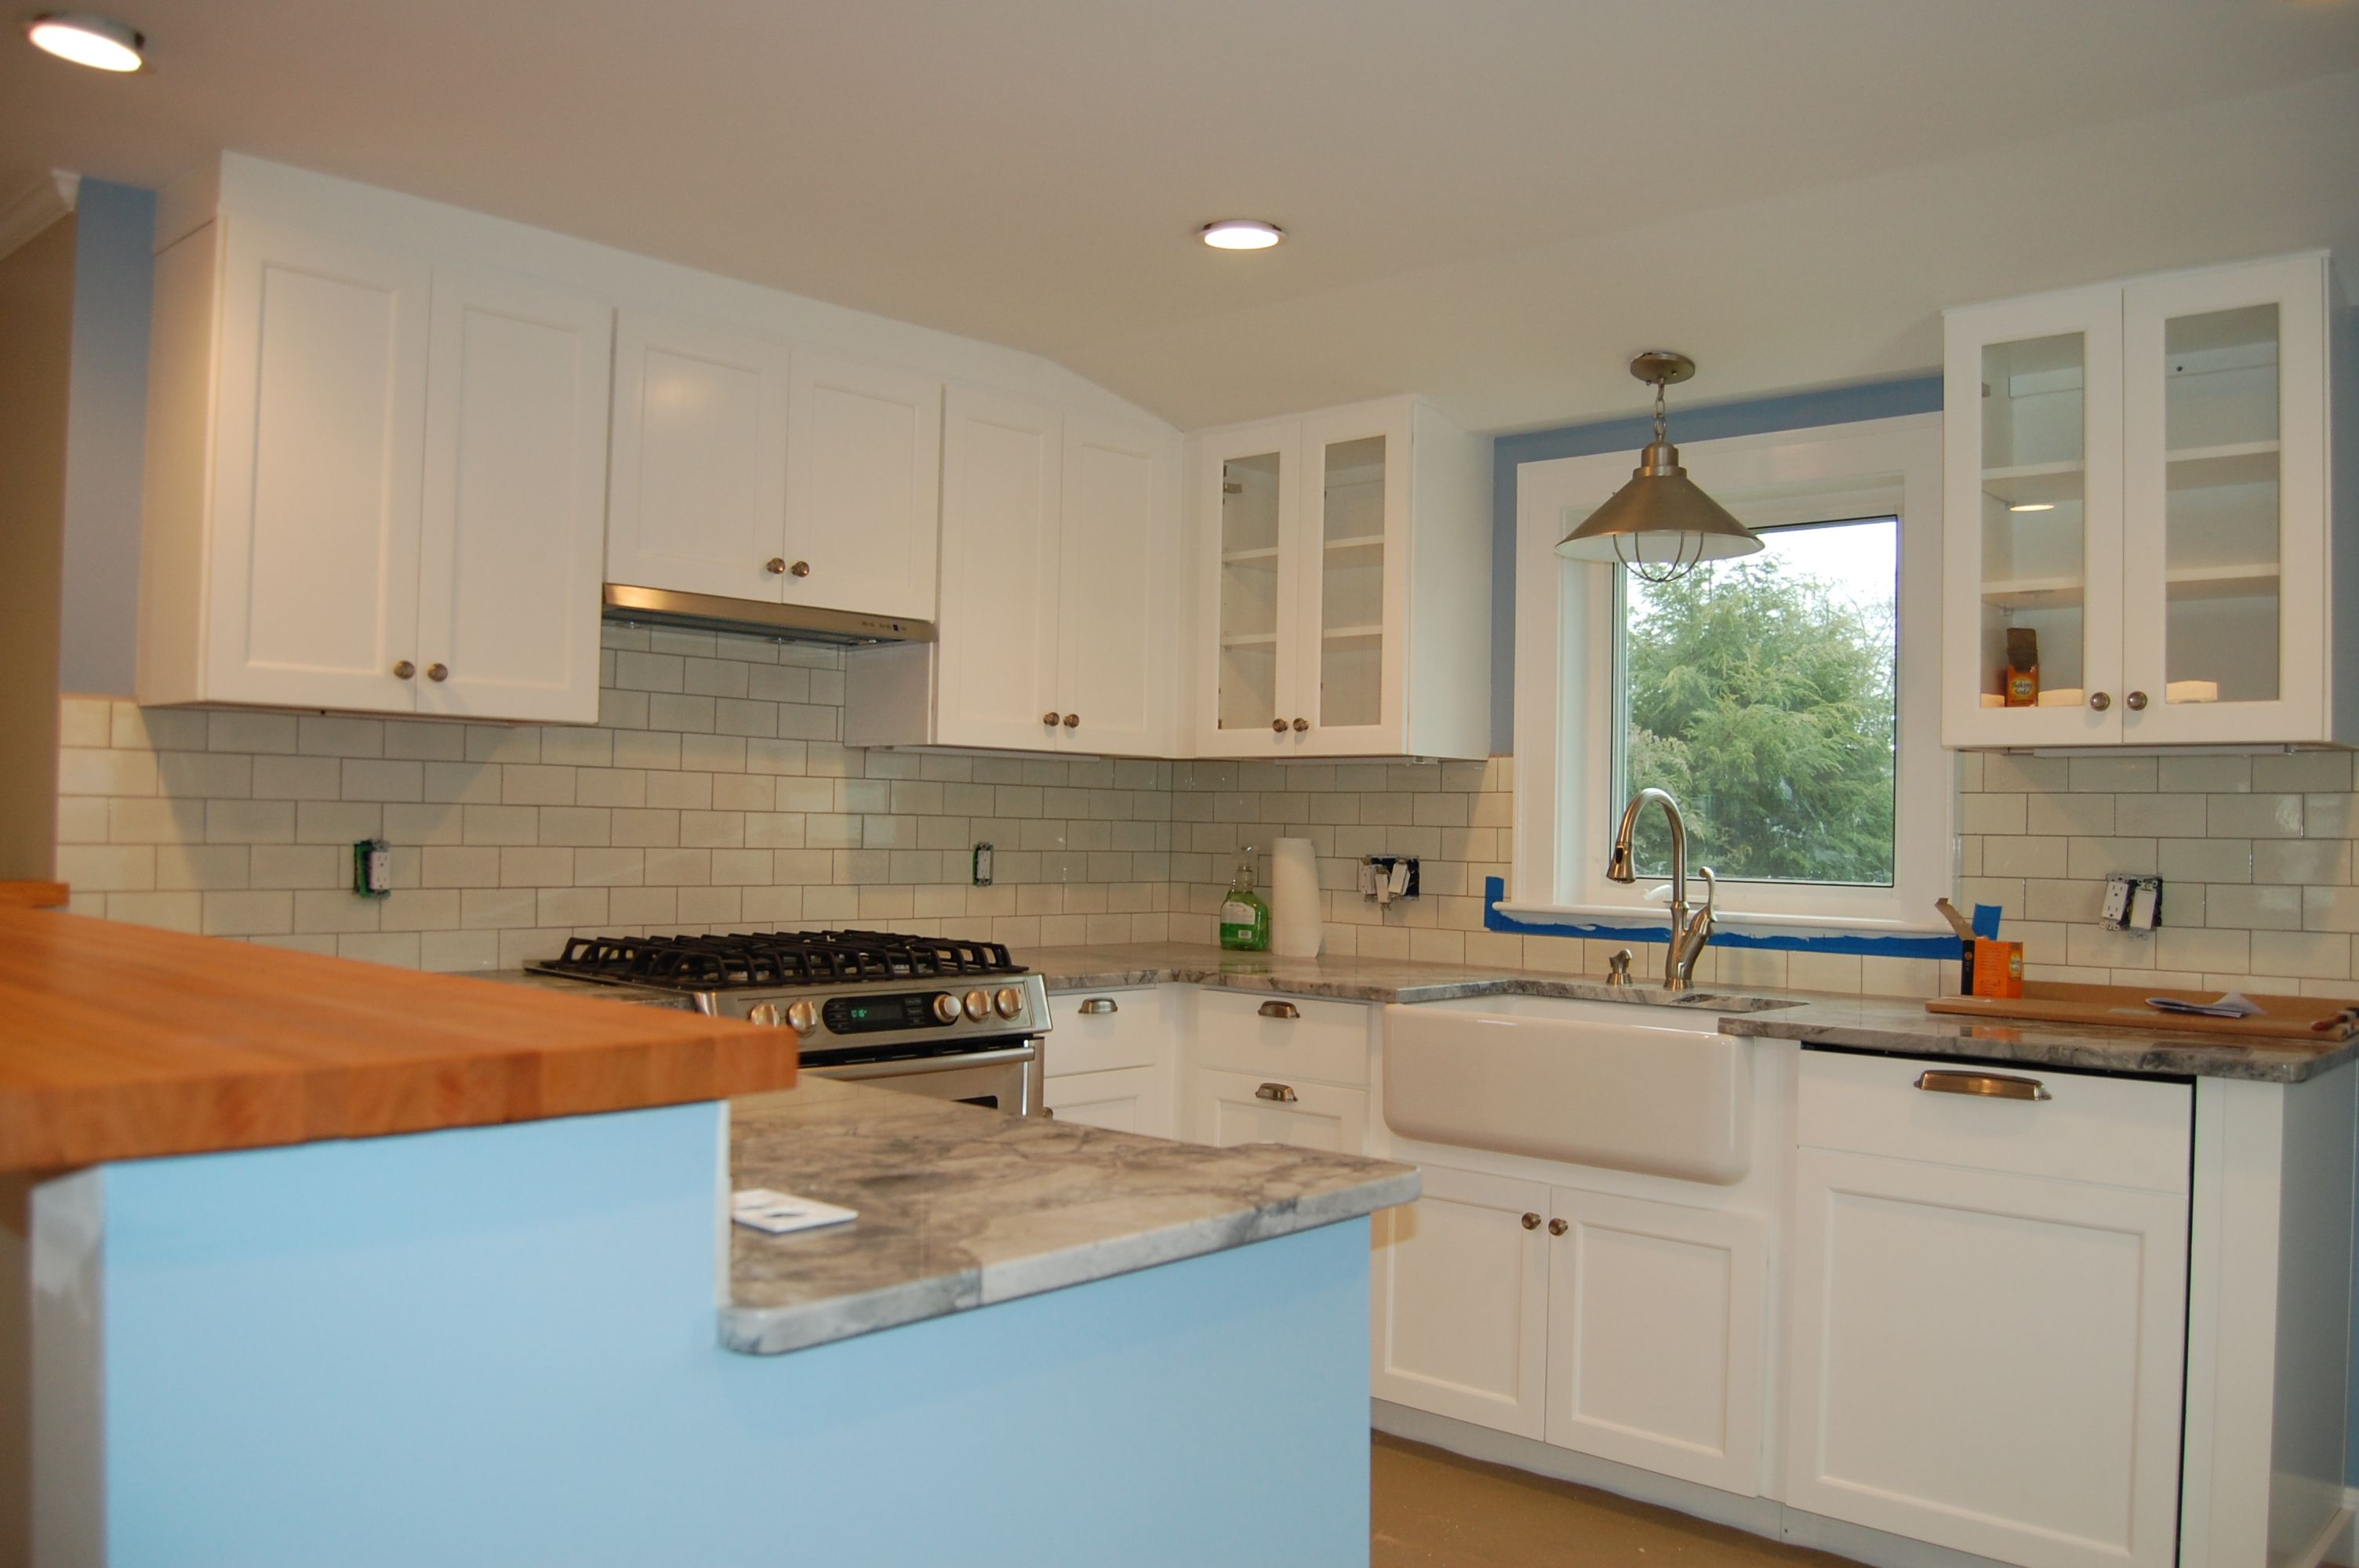 Bgb projects kitchen renovation completed on 1940 s cape Cape cod style kitchen design